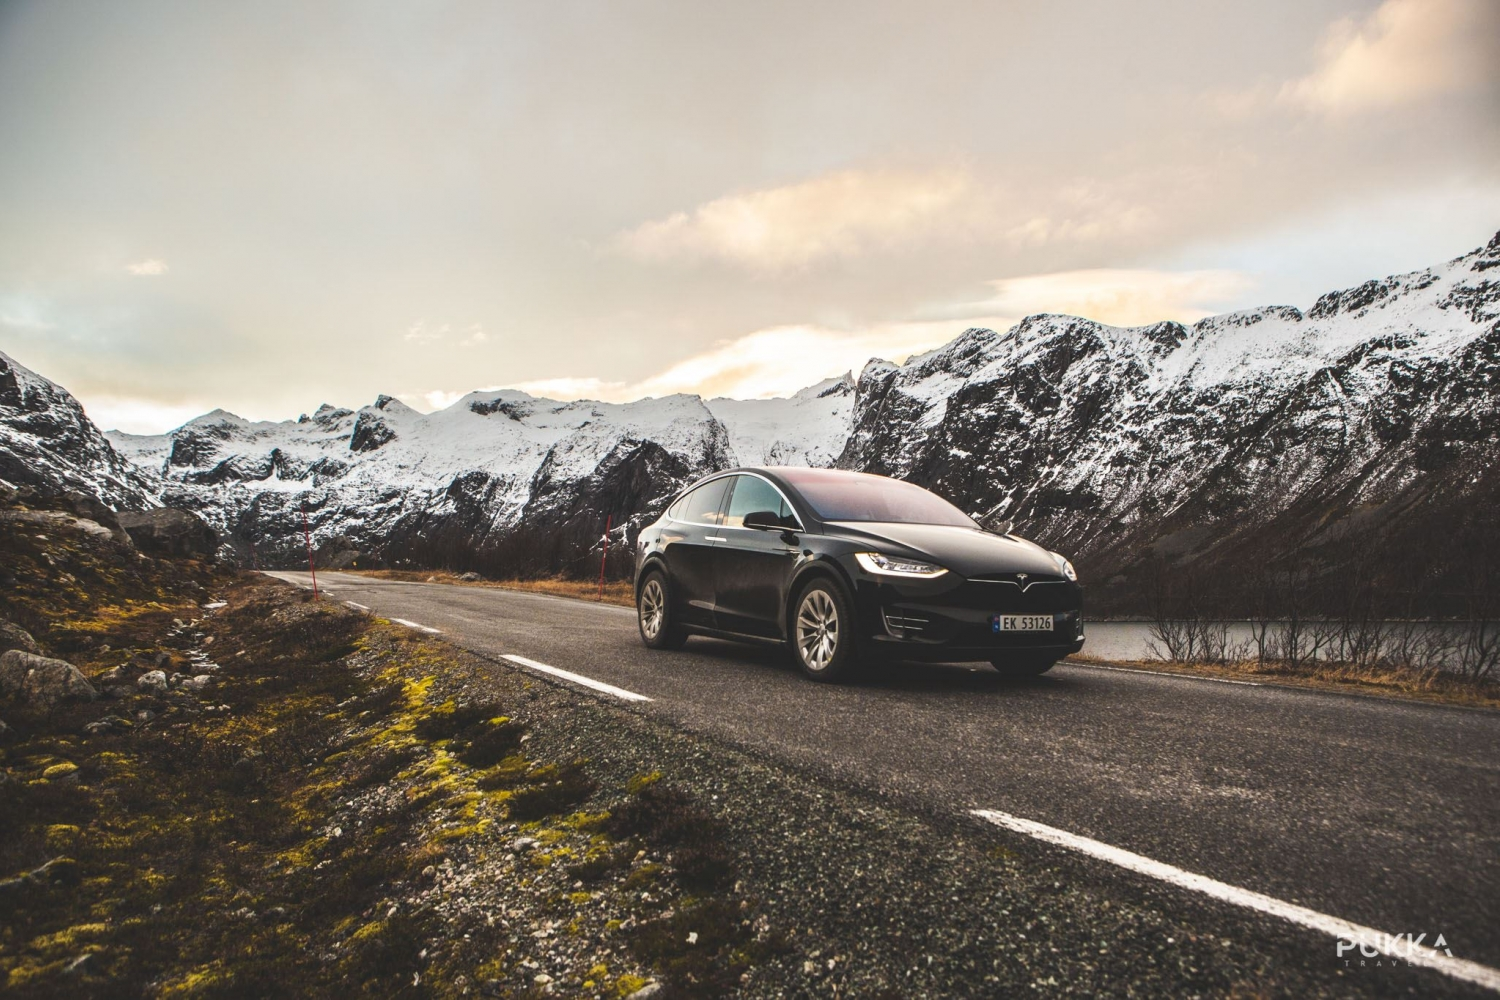 A black Tesla driving on a road with snowy hills in the background